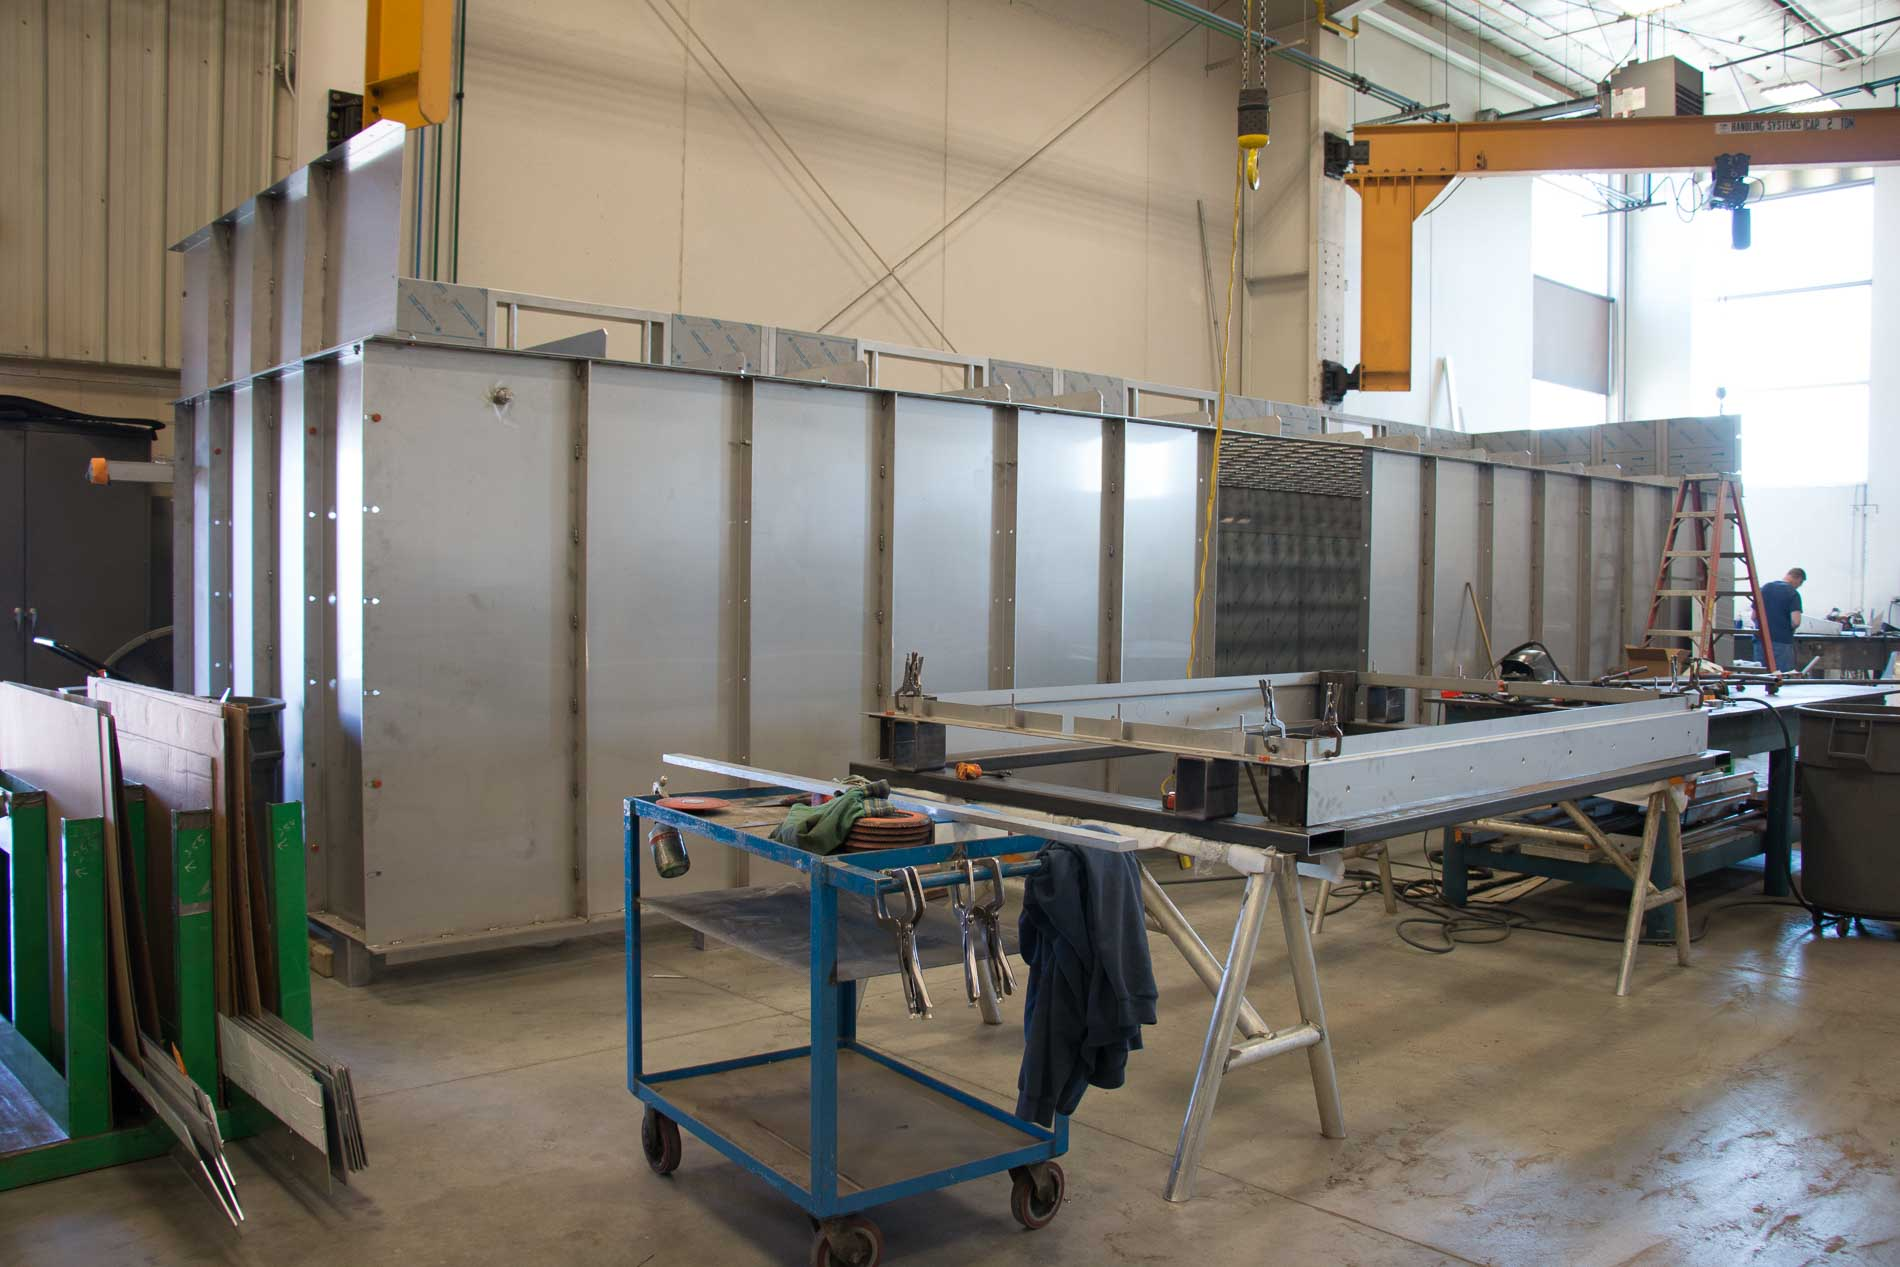 Badger Sheet Metal Works is a Trusted Metal Fabrication Specialist